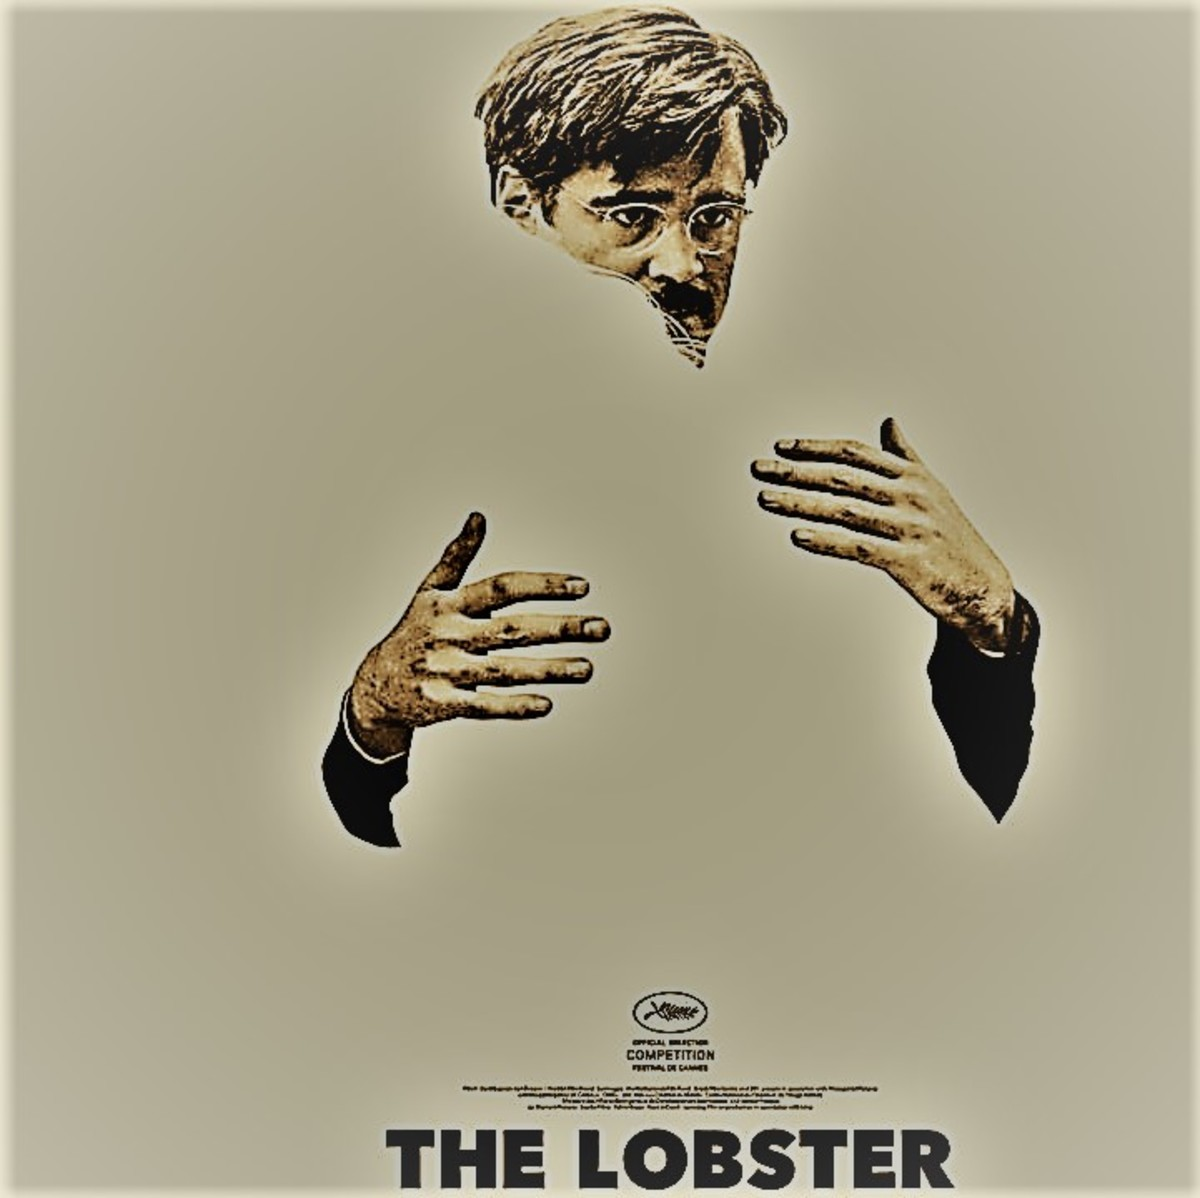 The Lobster #thelobster #thelobsterexplained